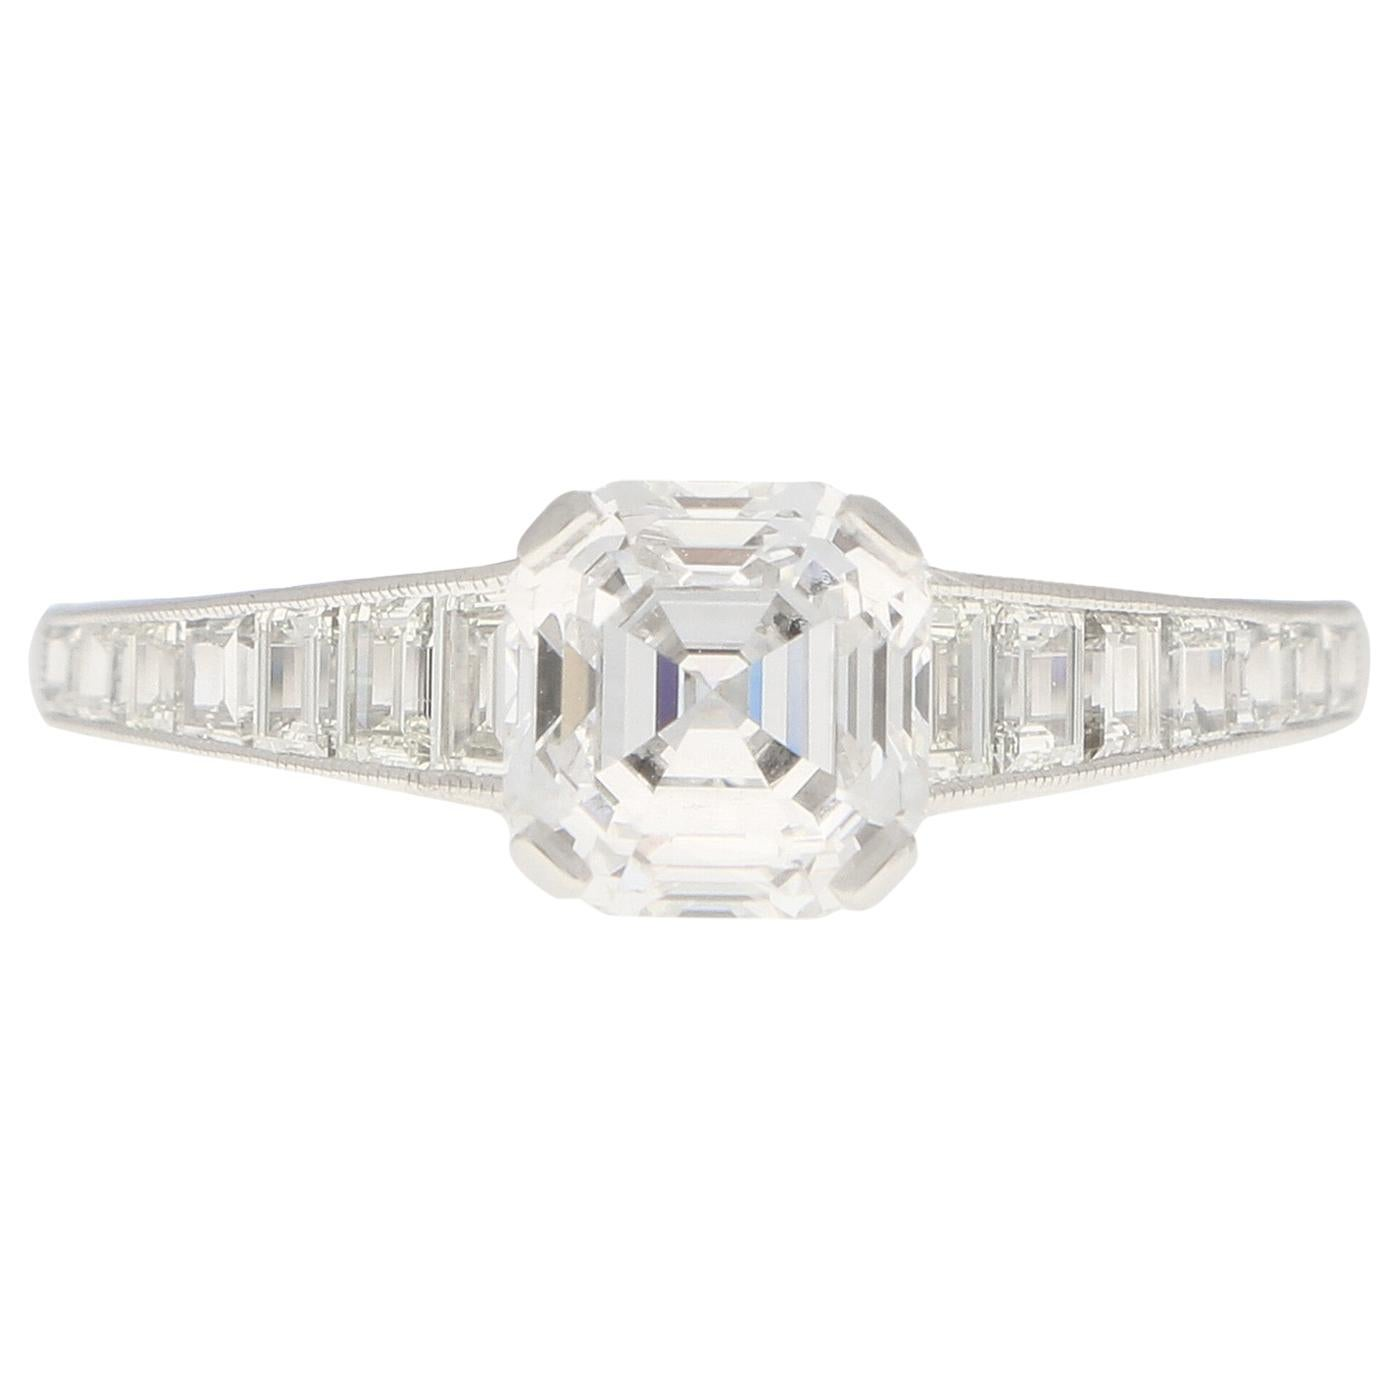 GIA Certified Art Deco Style Asscher Cut Diamond Engagement Ring in Platinum